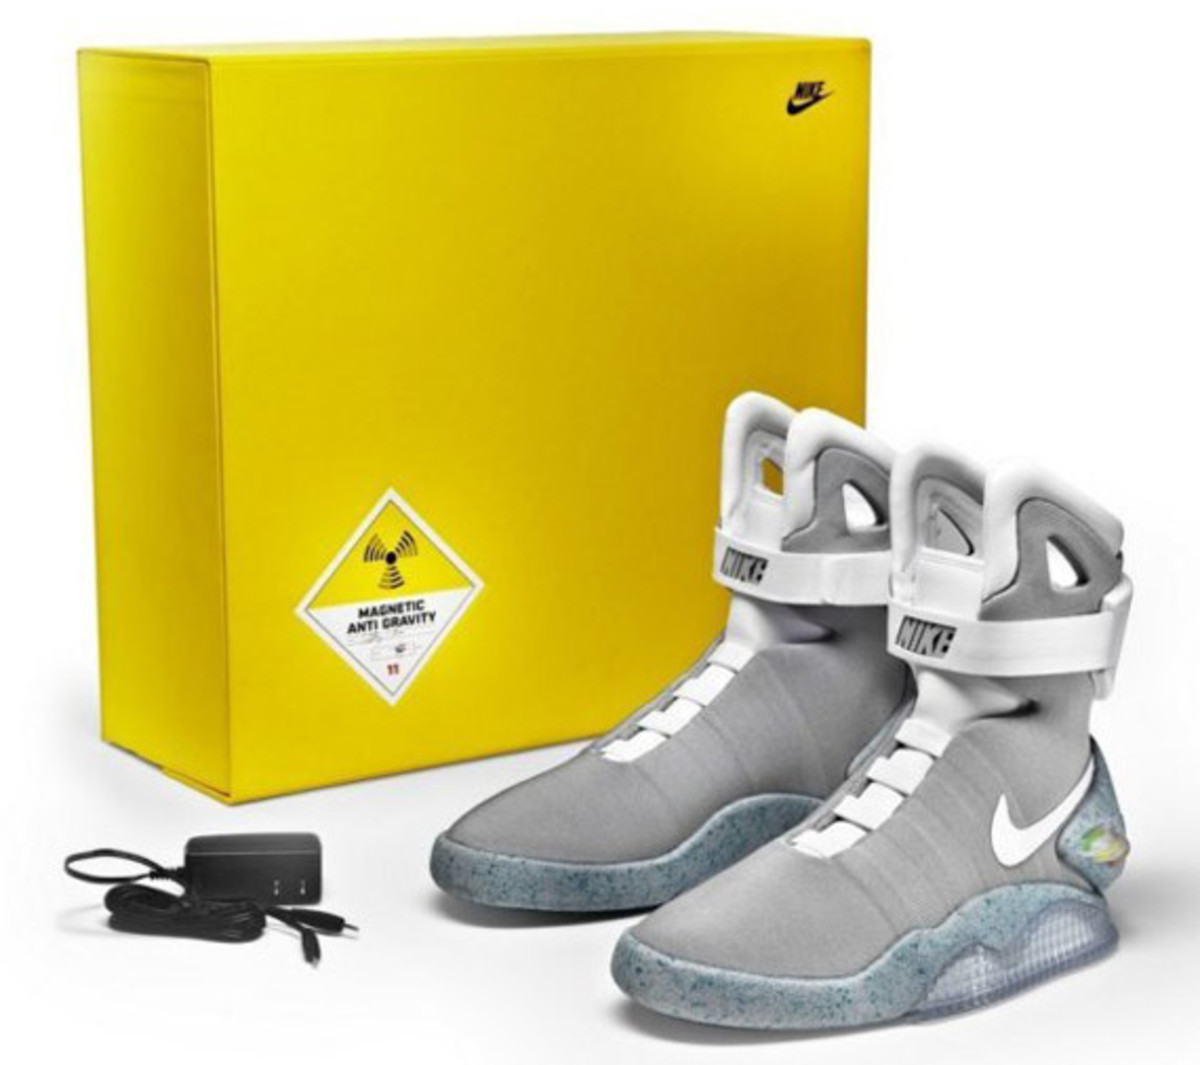 2011-nike-mag-charity-auction-reminder-02